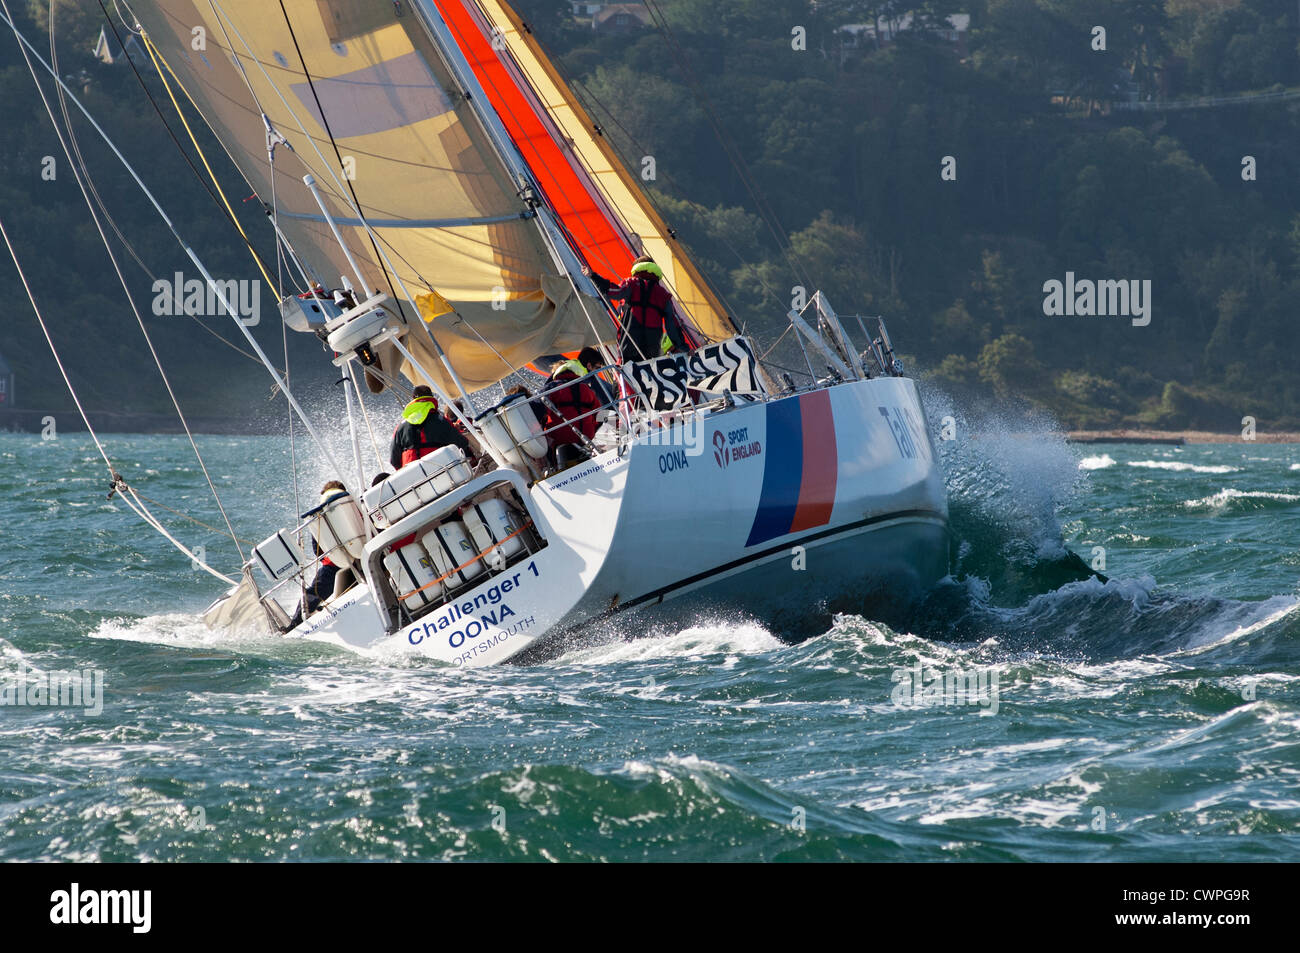 2012 England Isle of Wight RTI Round the Island United Kingdom Yacht sail sailing yachting gaff rigged Solent rough - Stock Image